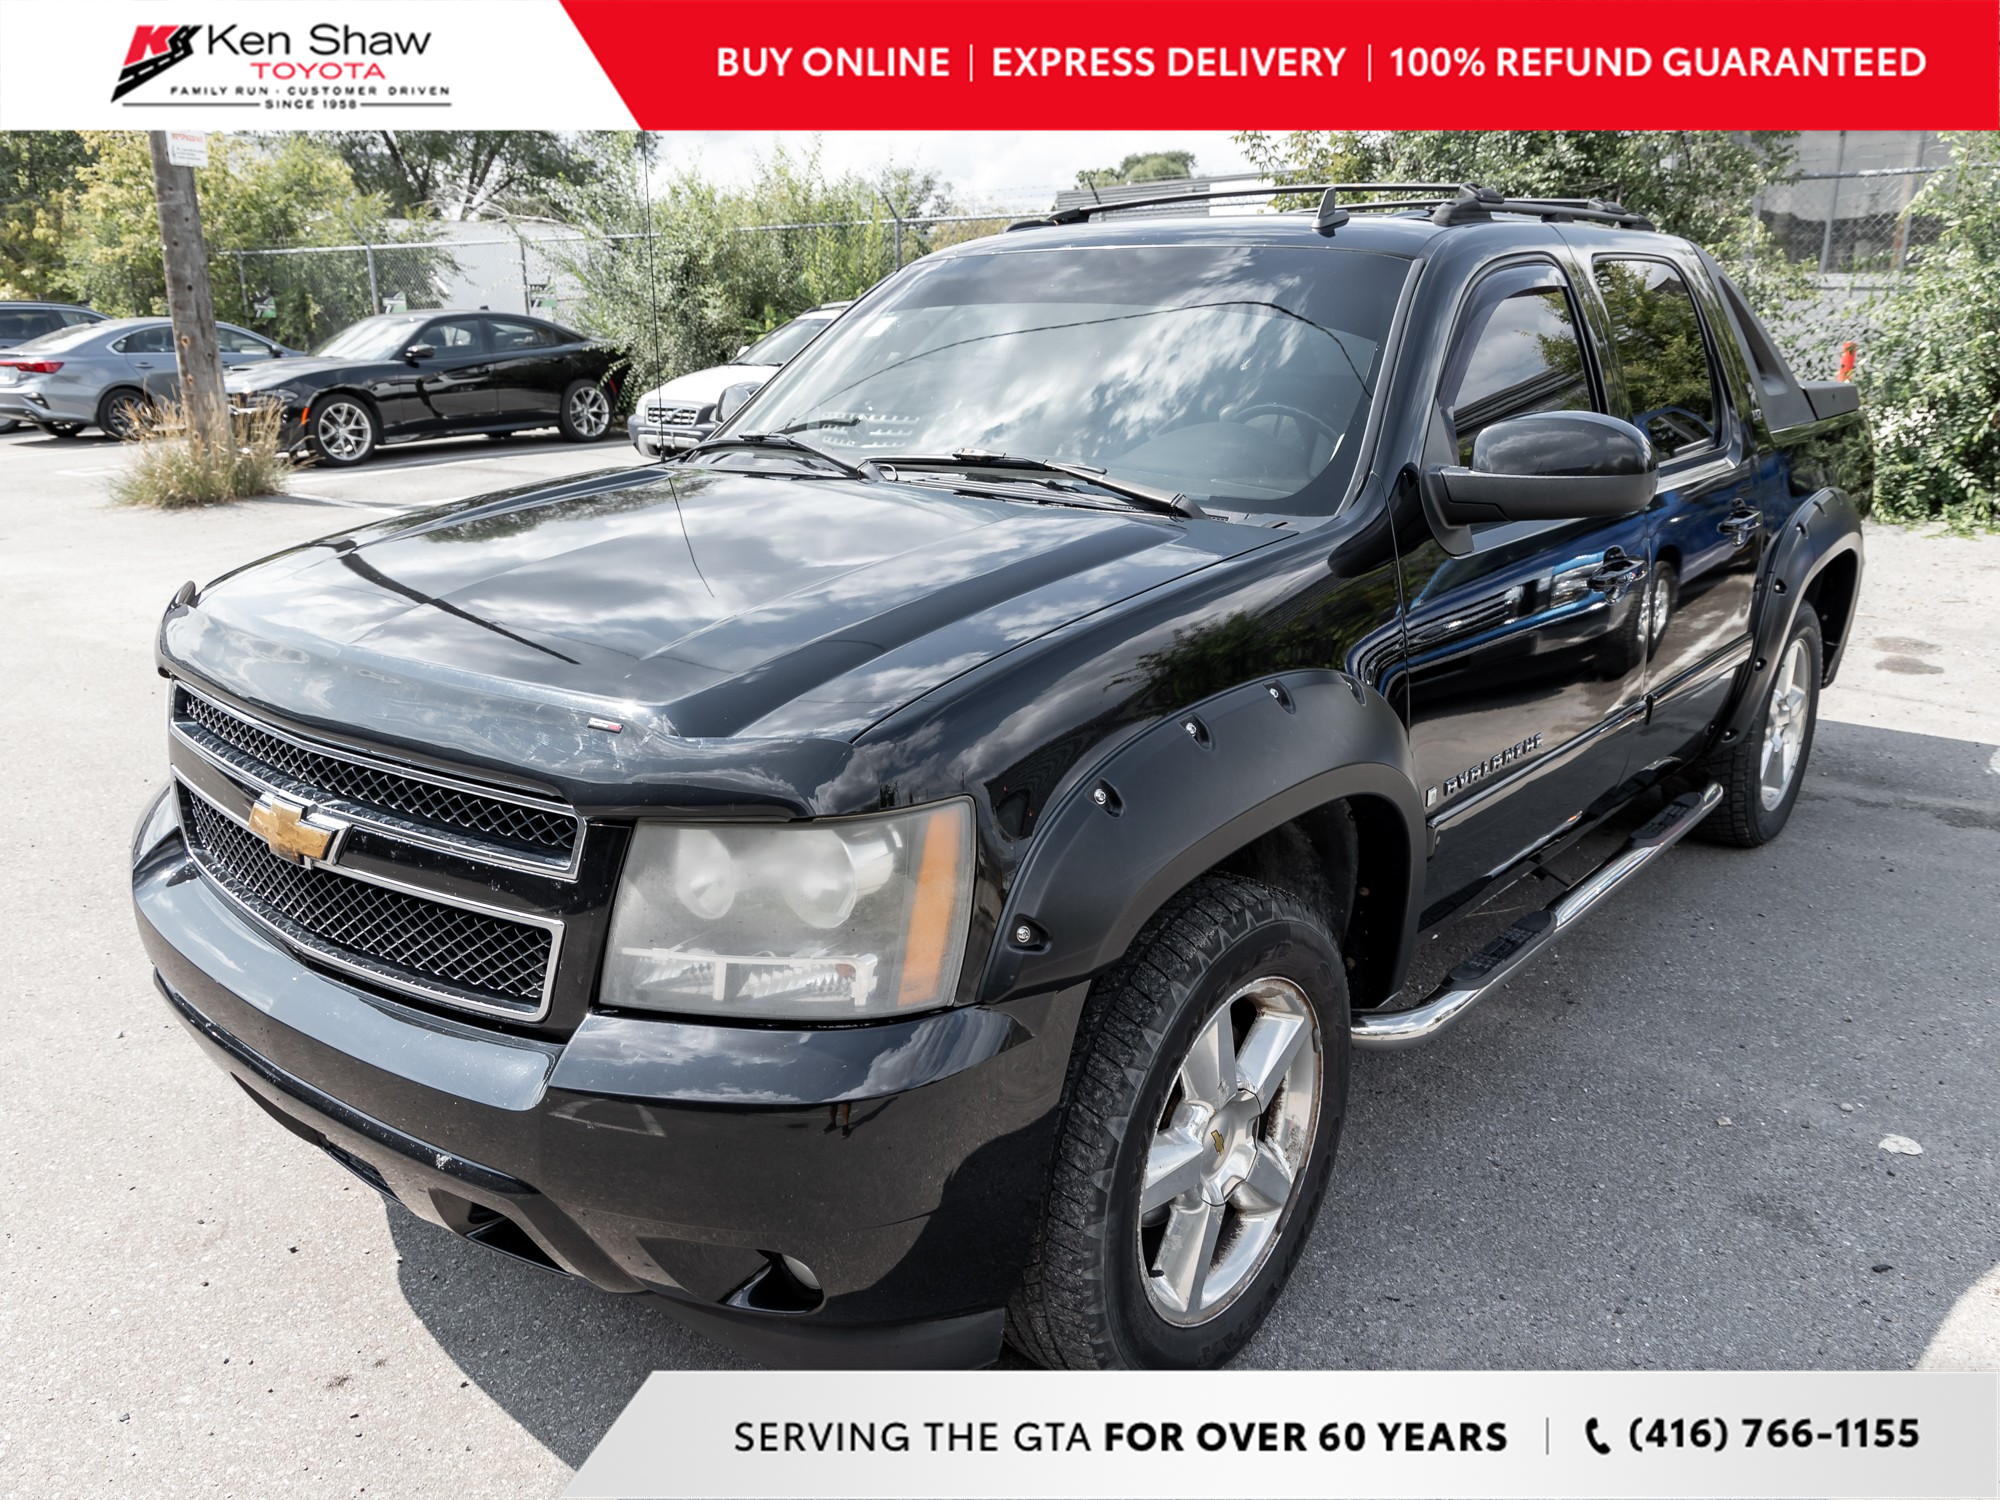 used 2007 Chevrolet Avalanche 1500 car, priced at $3,999